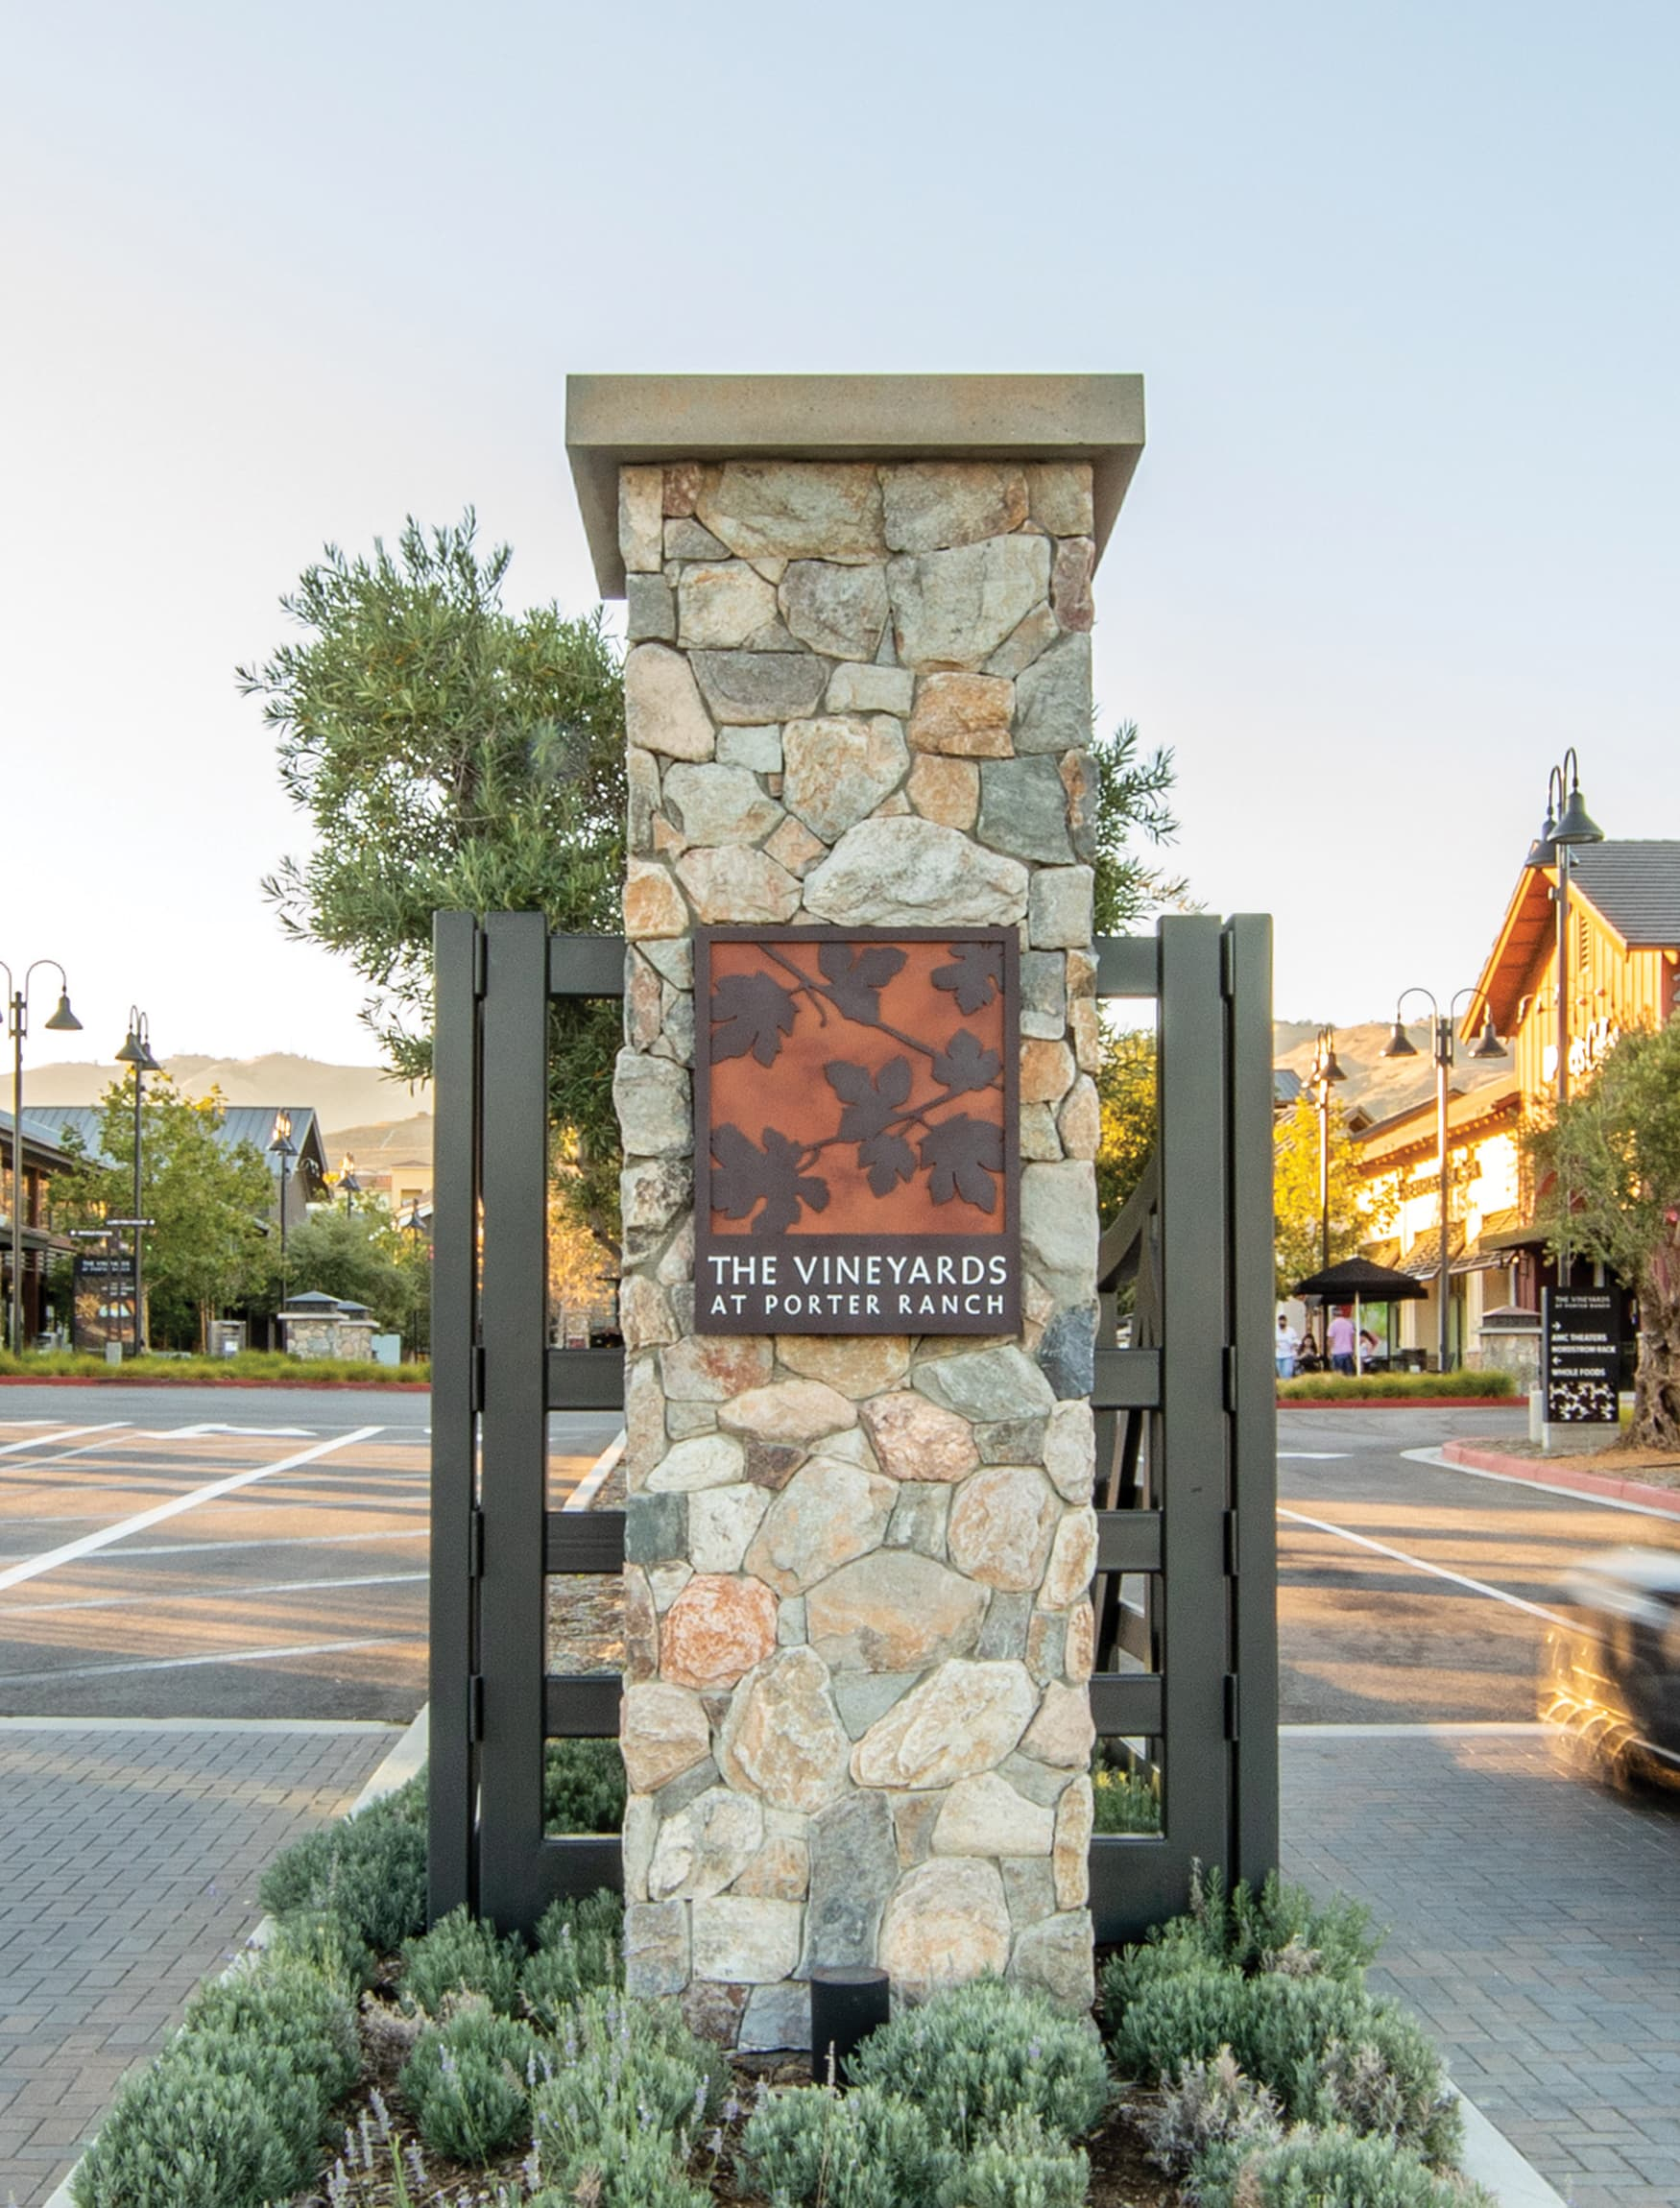 The Vineyard at Porter Ranch project monumentation gateway with project identity plaque.